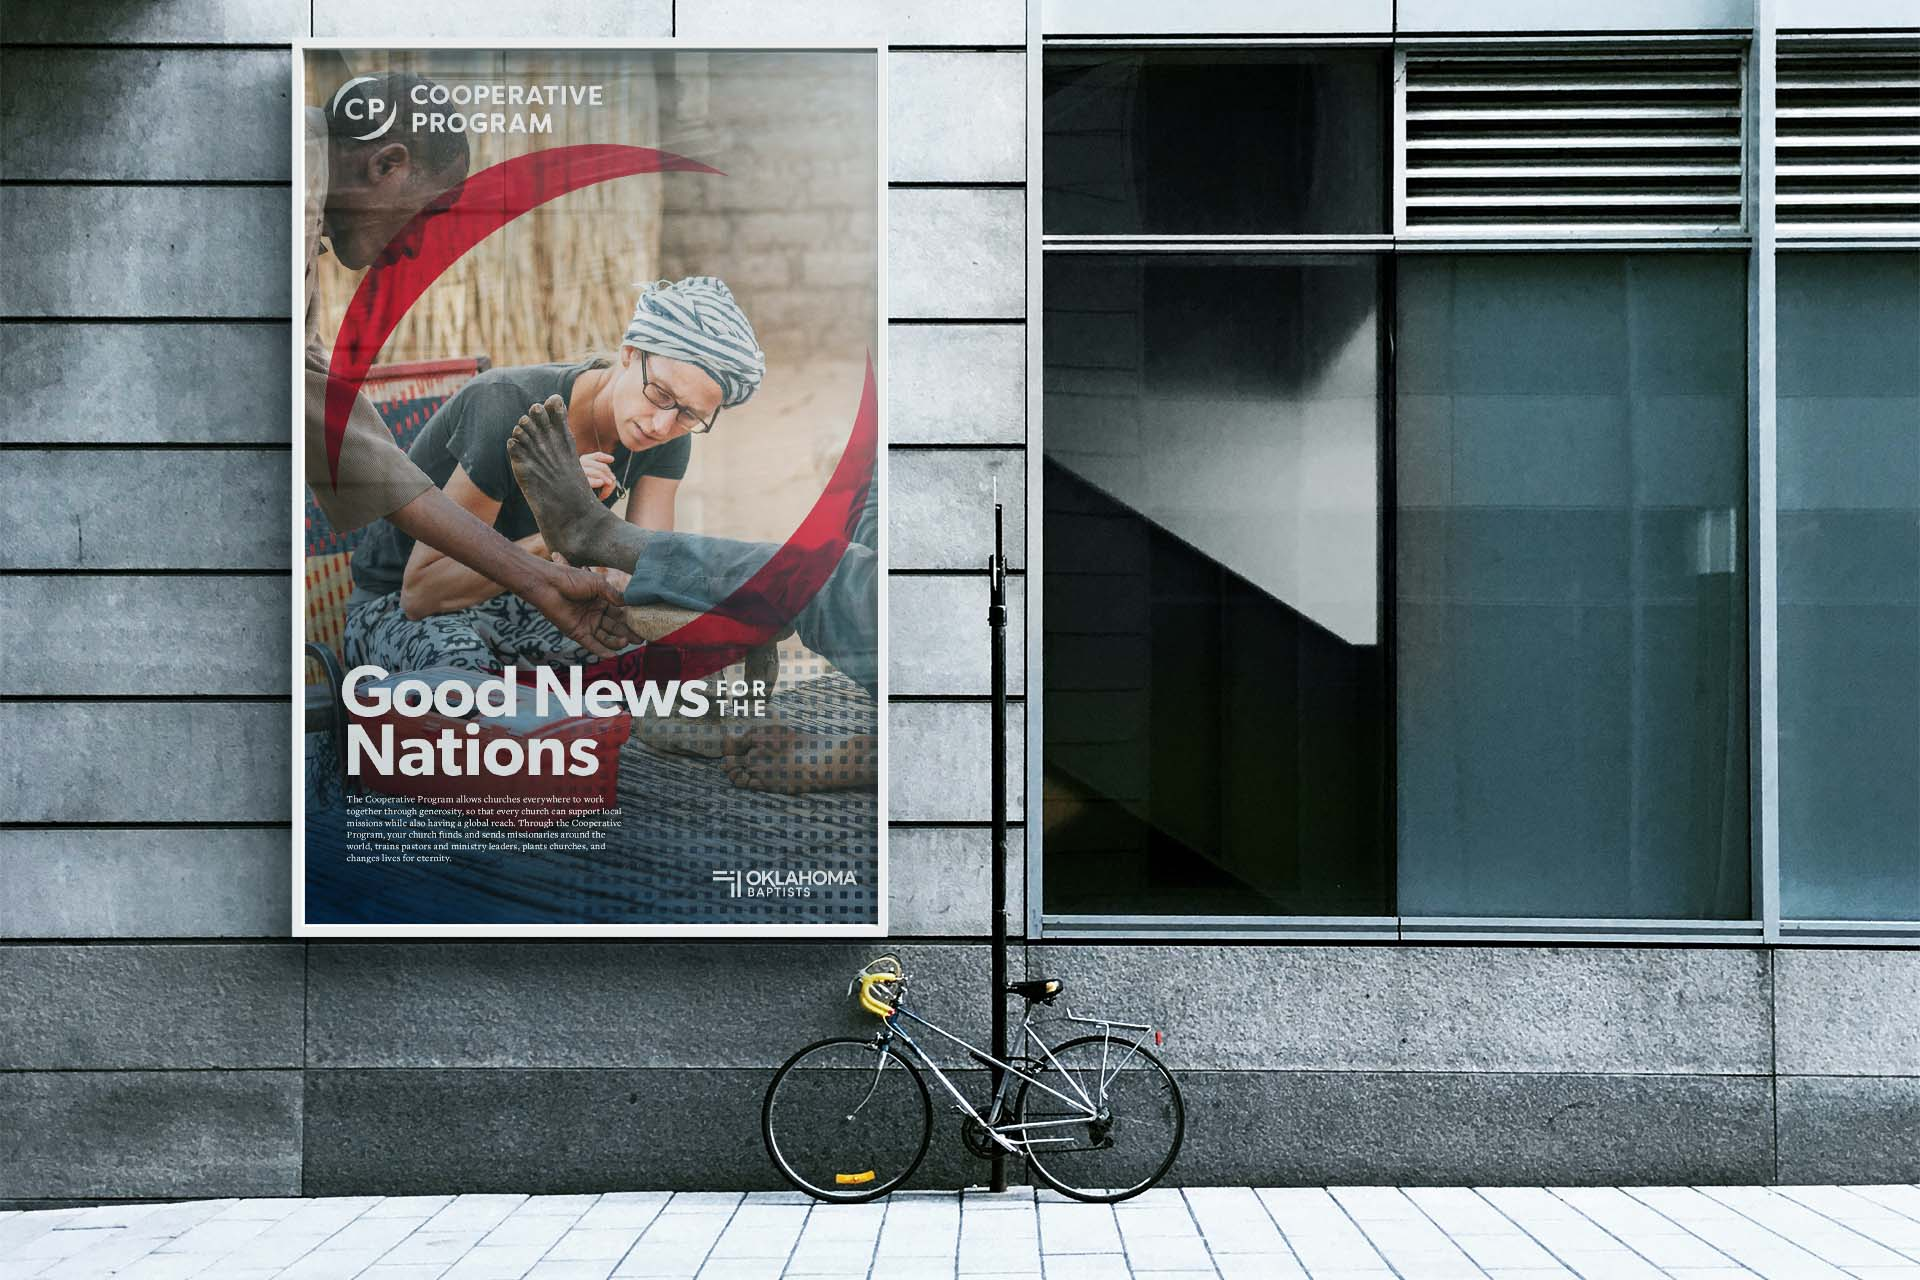 A poster mounted to the side of a building, depicting a missionary doctor examining a patient.